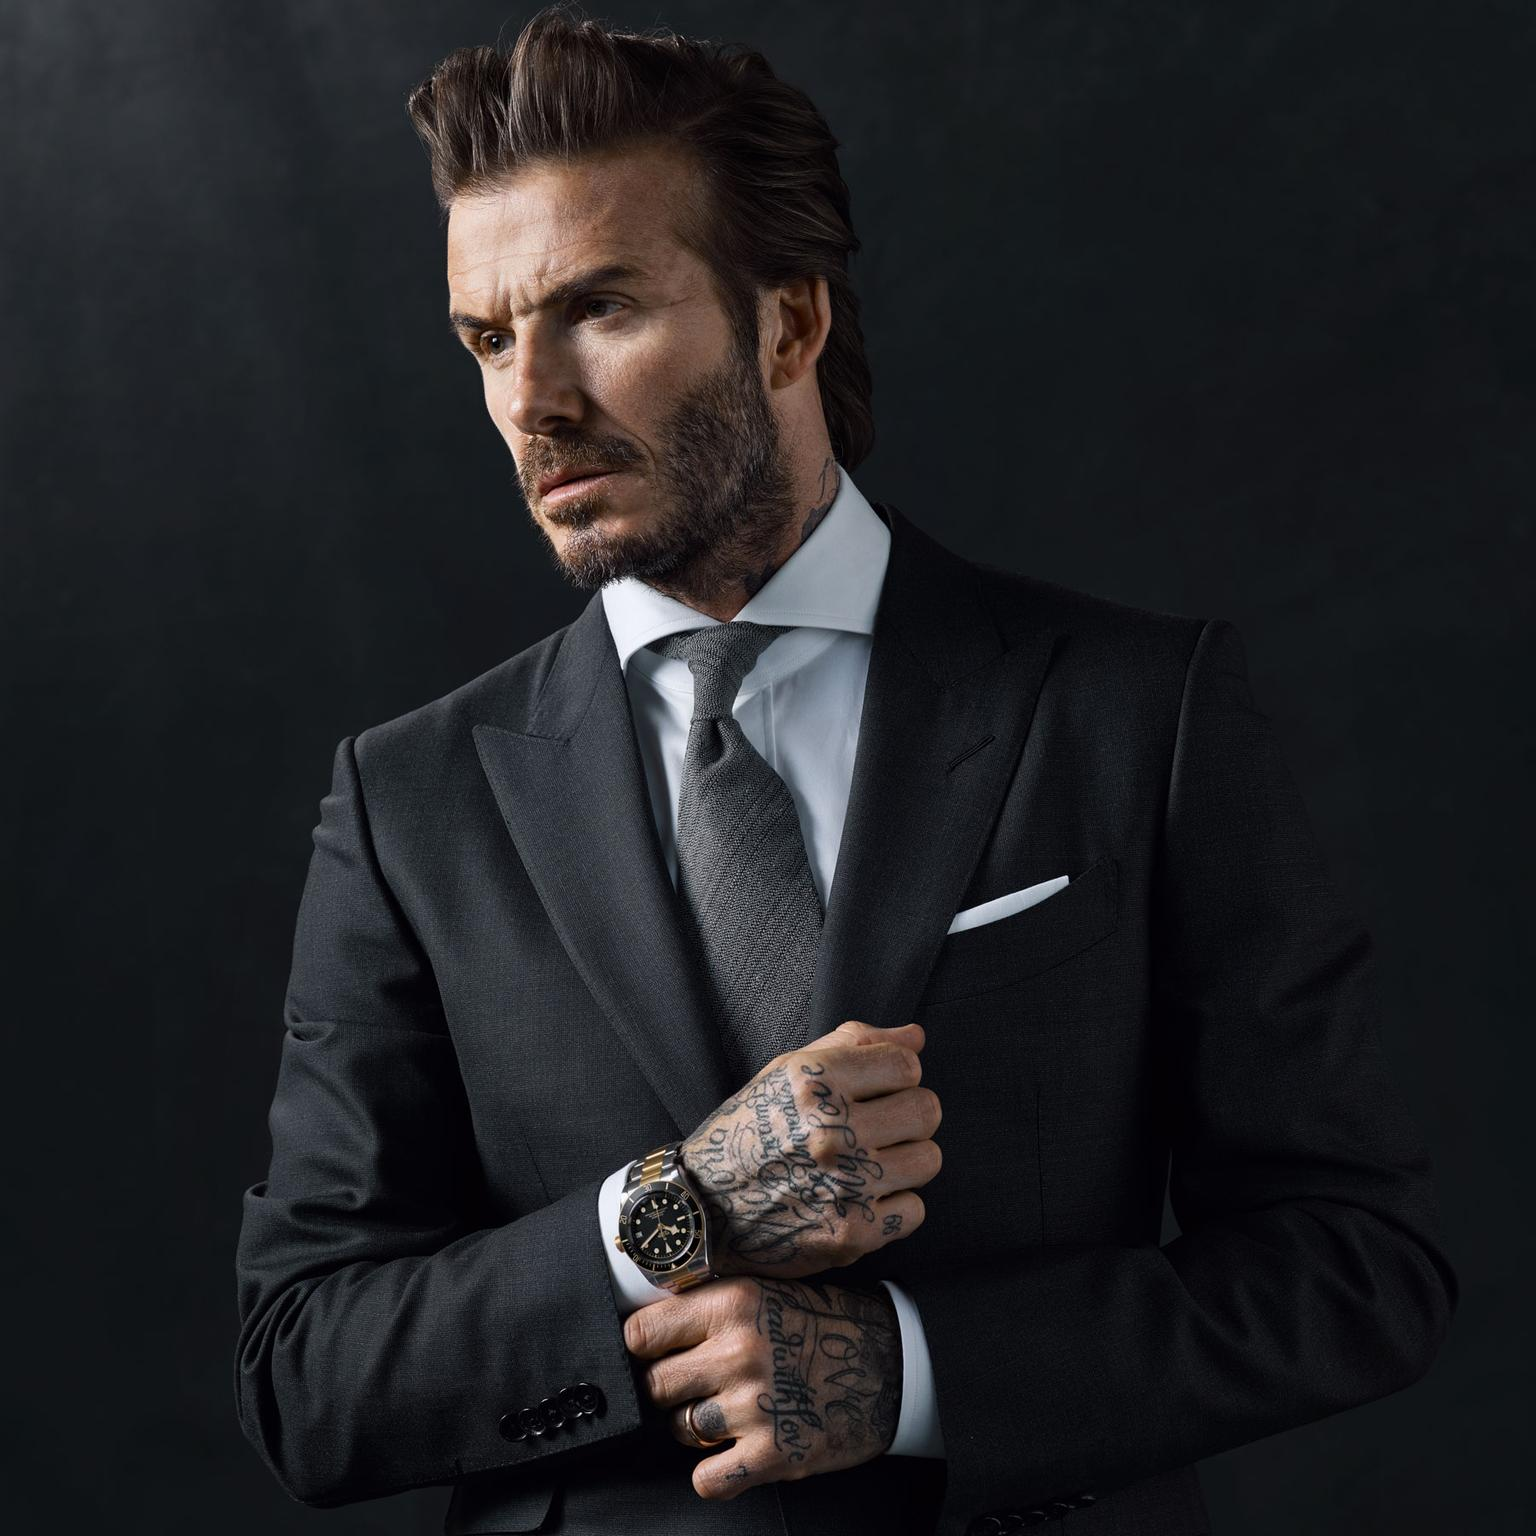 David Beckham for Tudor's Born to Dare watch campaign wearing a suit